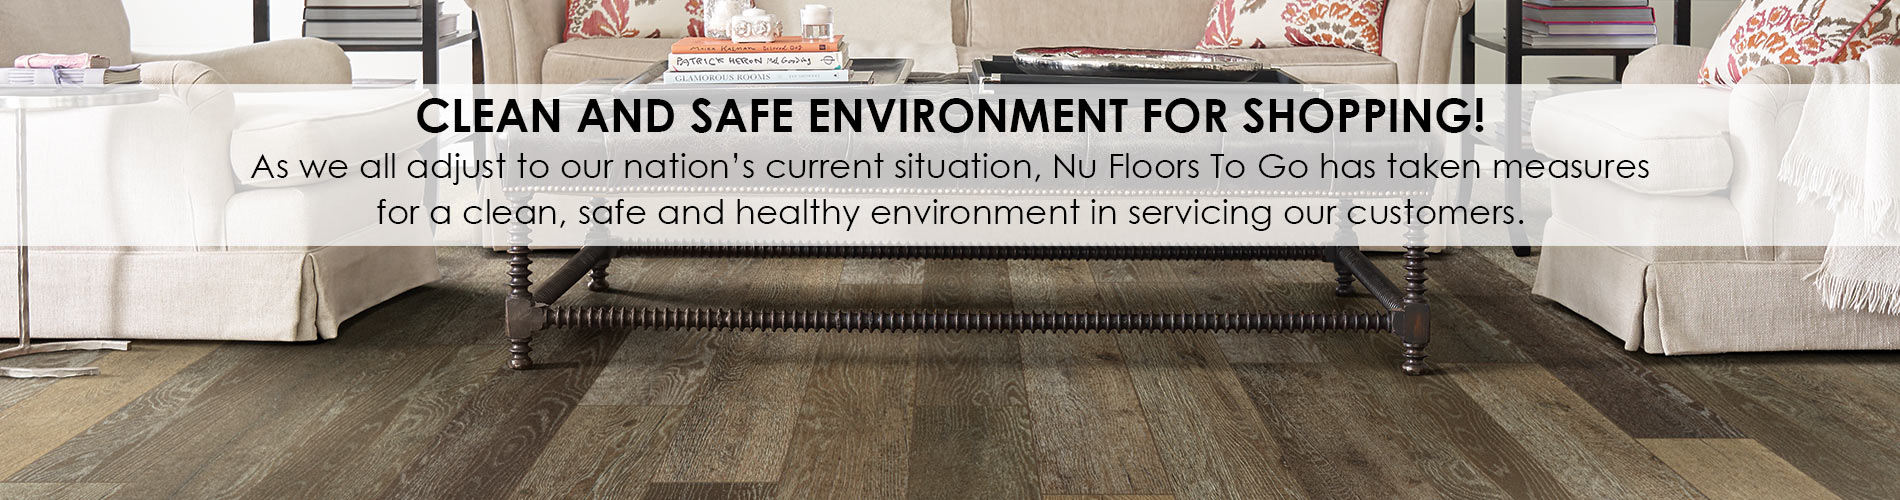 Clean and Safe Environment for Shopping! As we all adjust our nation's current situation, Nu Floors To Go has taken measures for a clean, safe and healthy environment in servicing our customers.